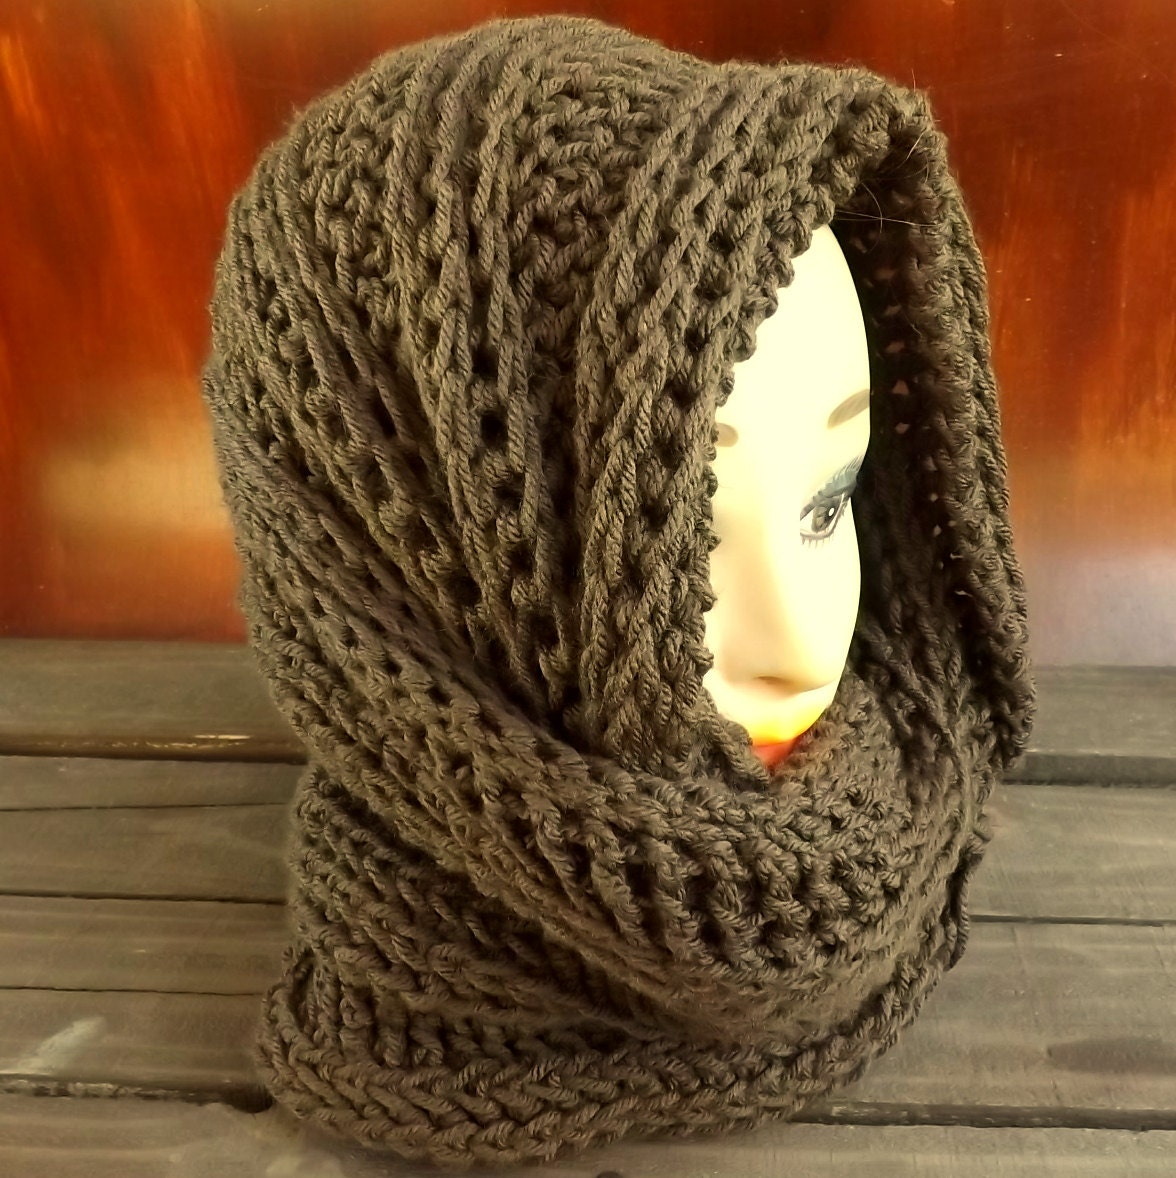 Hooded cowl pattern mobius cowl scarf crochet pattern hooded zoom bankloansurffo Image collections